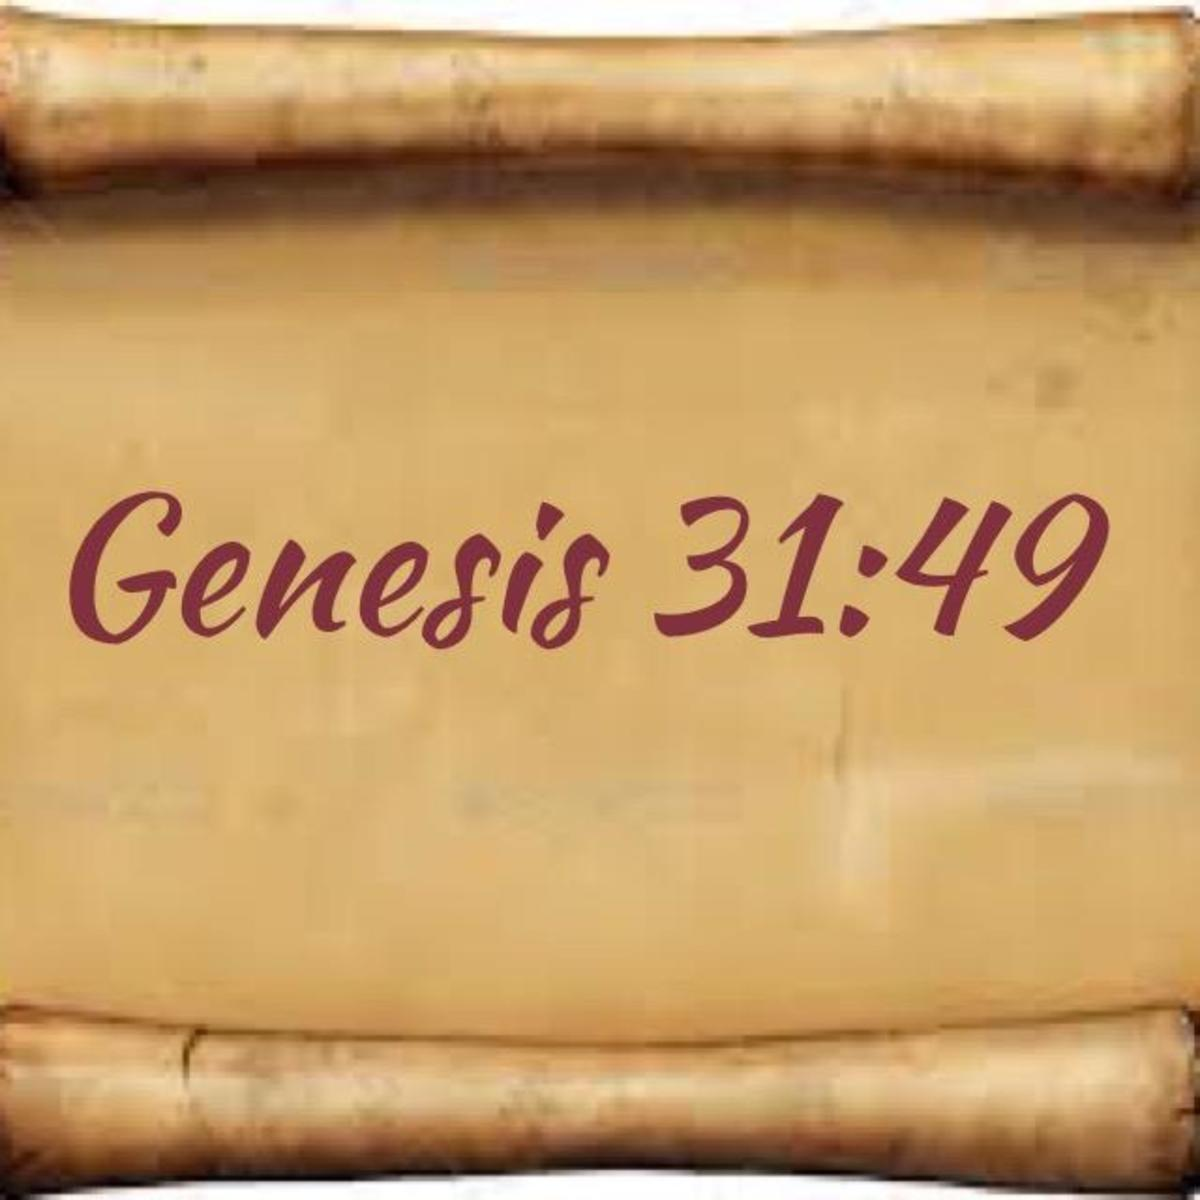 wrong-use-of-may-the-lord-watch-between-thee-and-me-from-genesis-3149